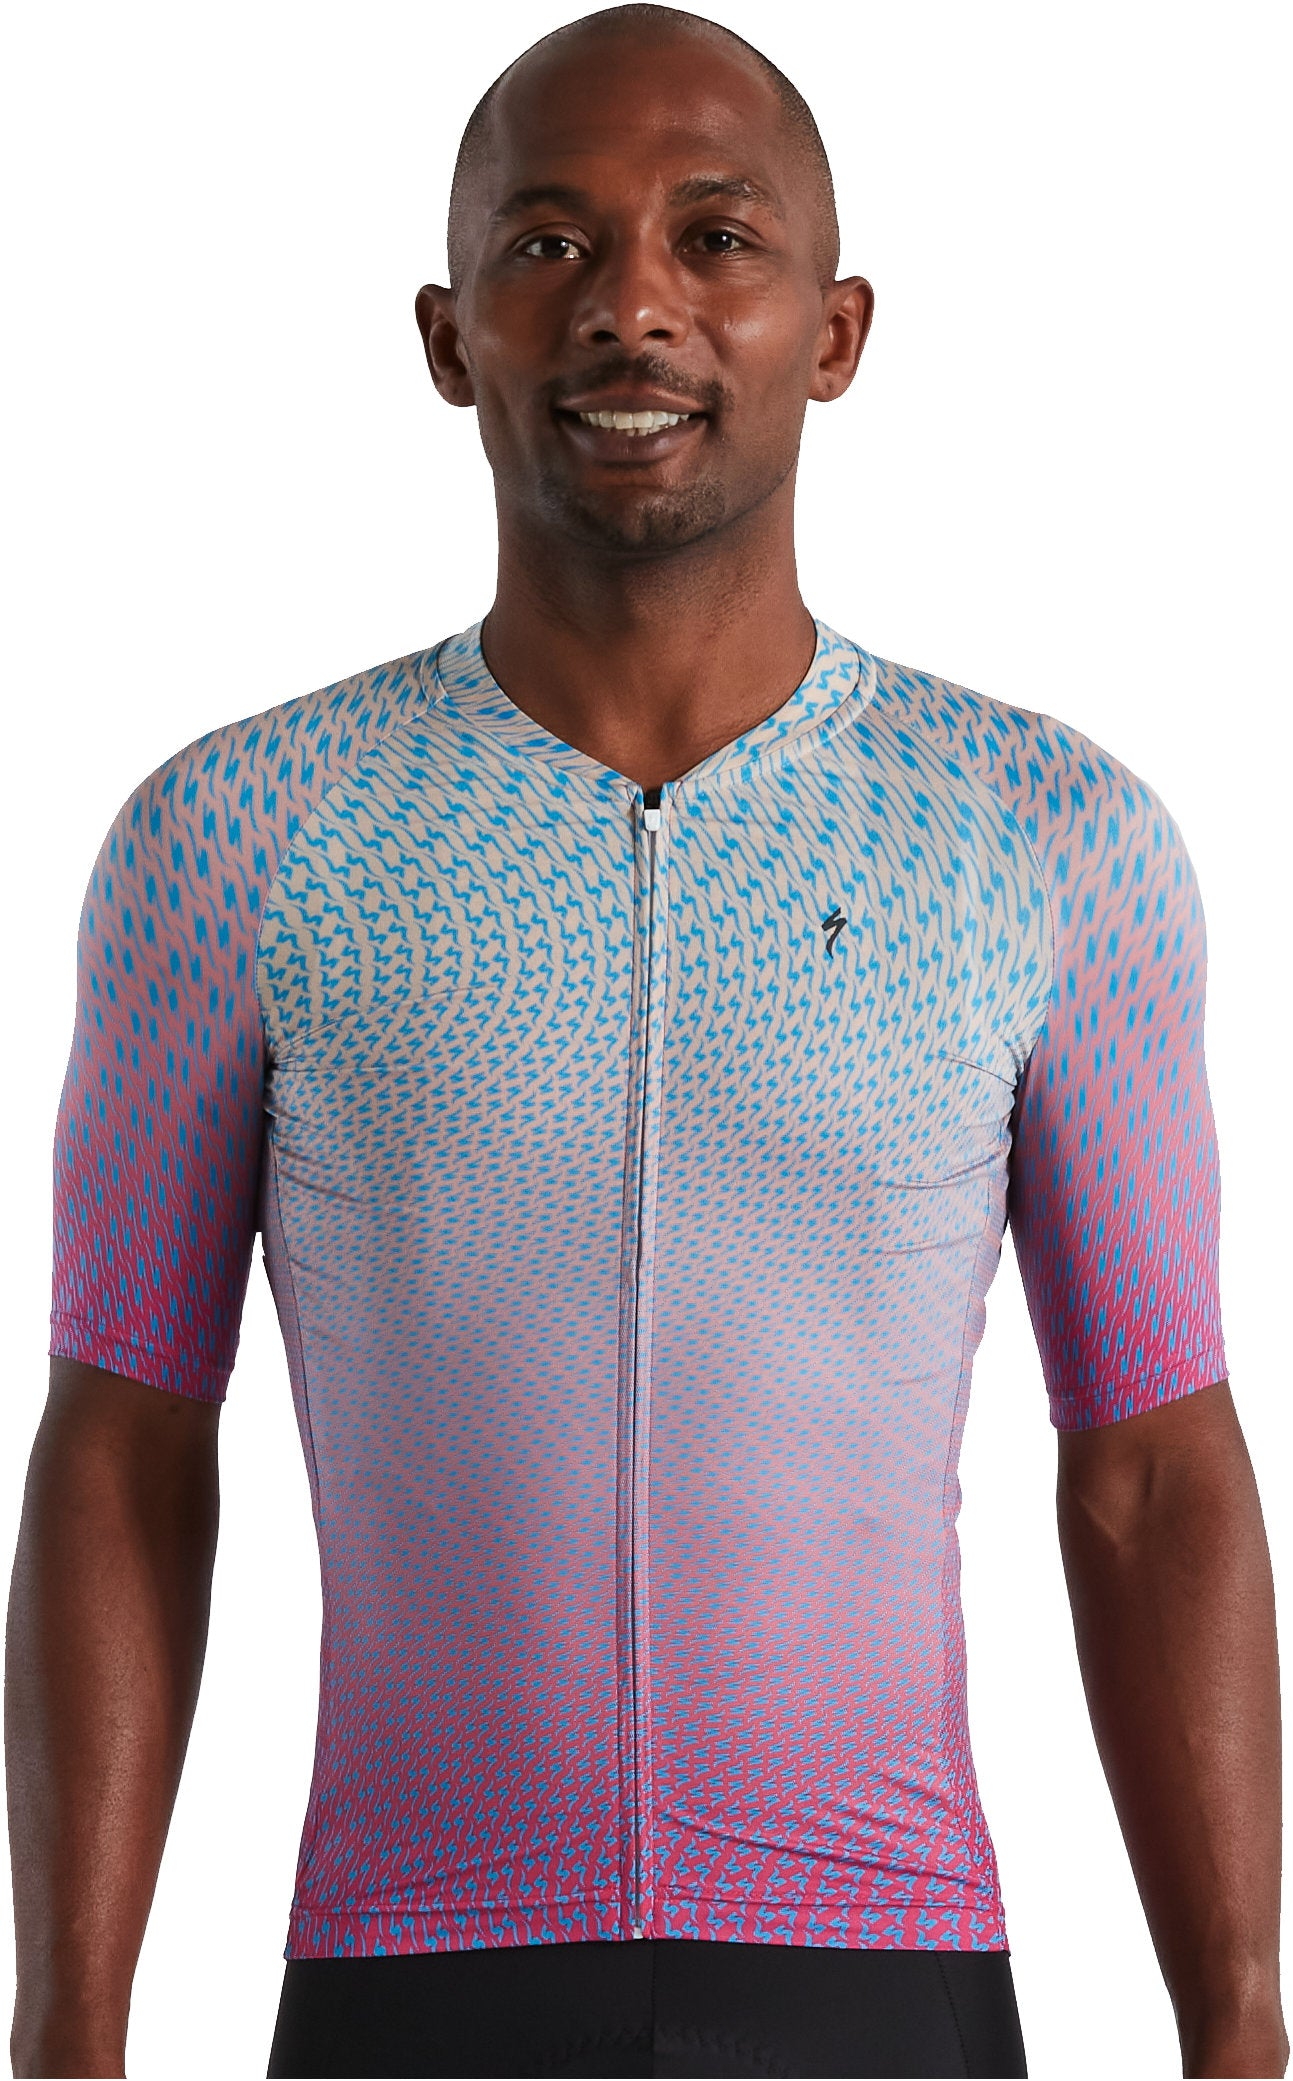 Men's SL Bicycledelics Jersey